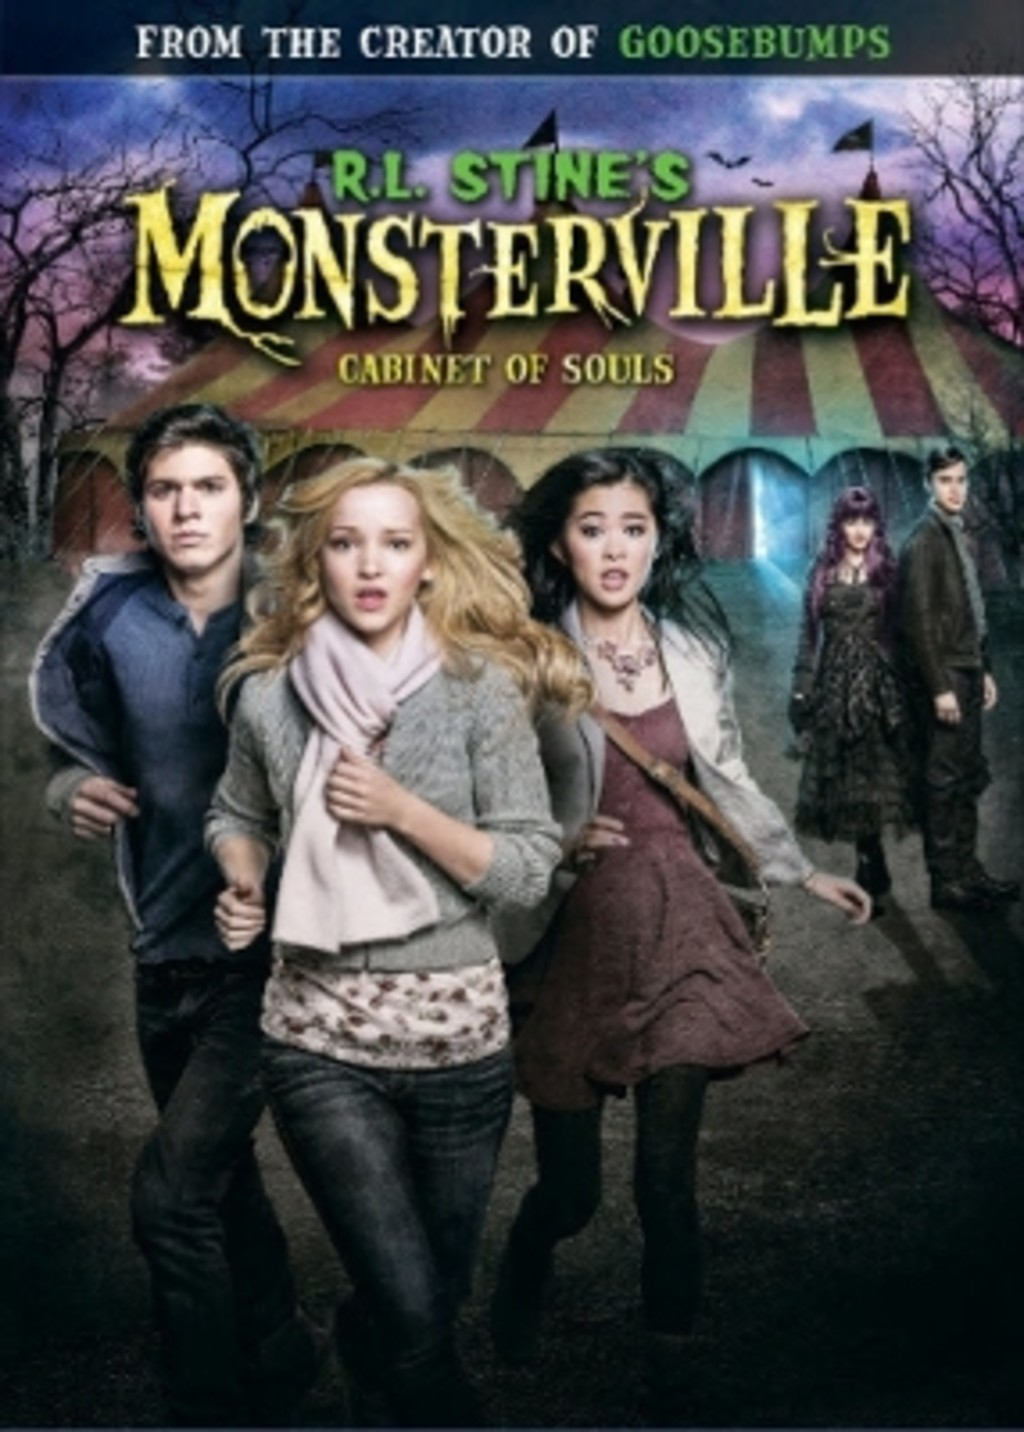 Watch R.L. Stine's Monsterville: The Cabinet of Souls on Netflix ...